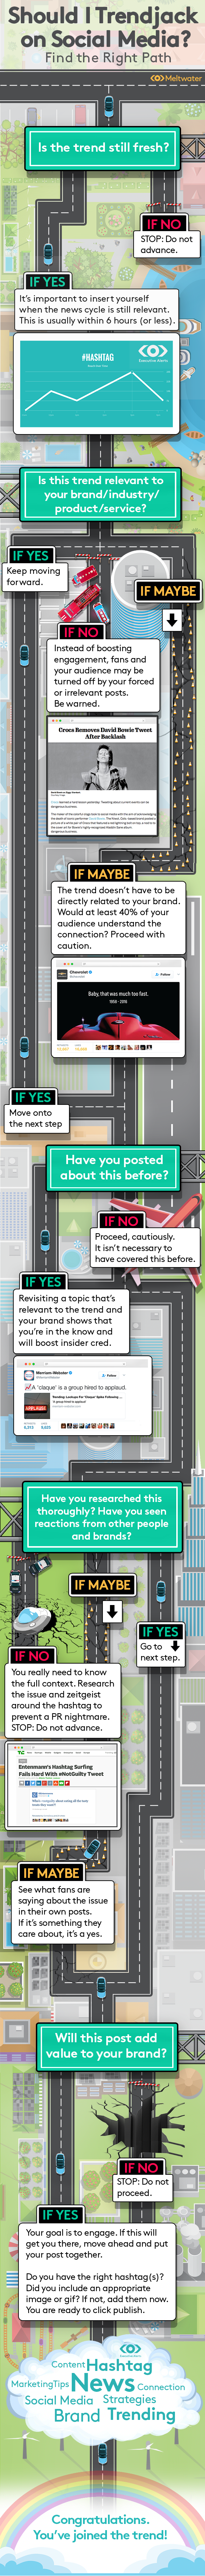 Should I Trendjack on Social Media? [Infographic] | Social Media Today